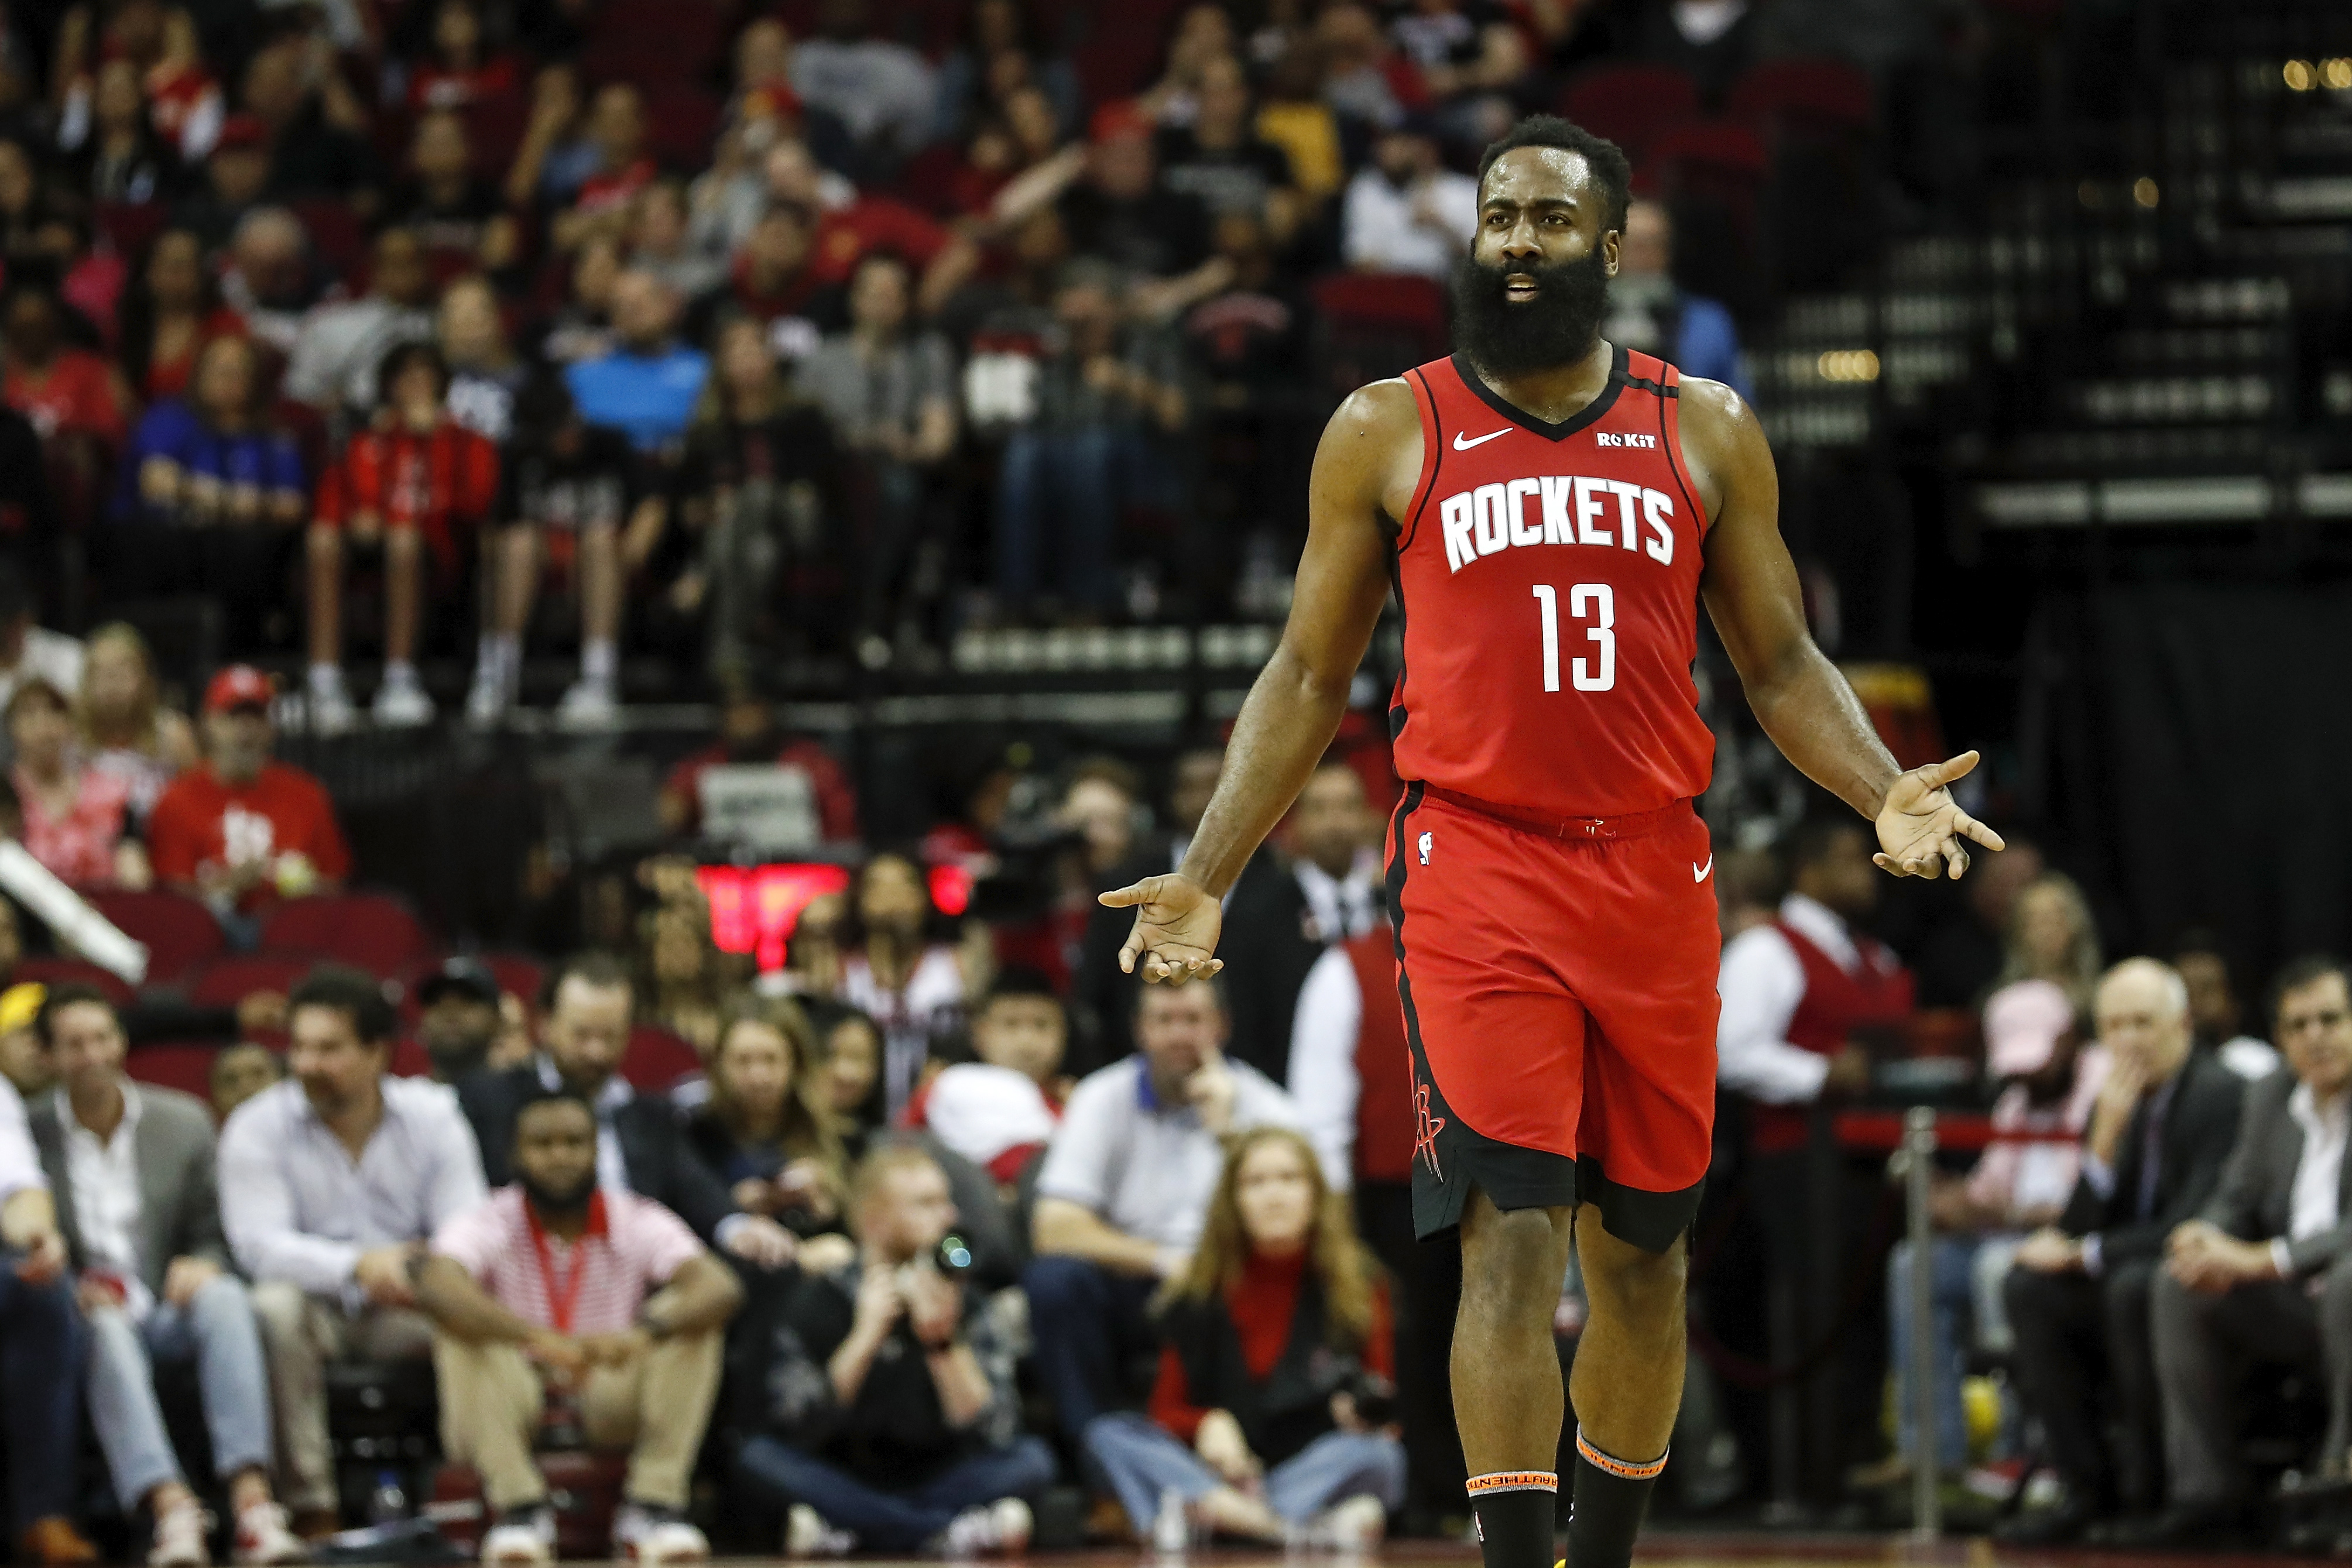 James Harden of the Houston Rockets reacts in the first half against the Minnesota Timberwolves at Toyota Center on March 10, 2020 in Houston, Texas.